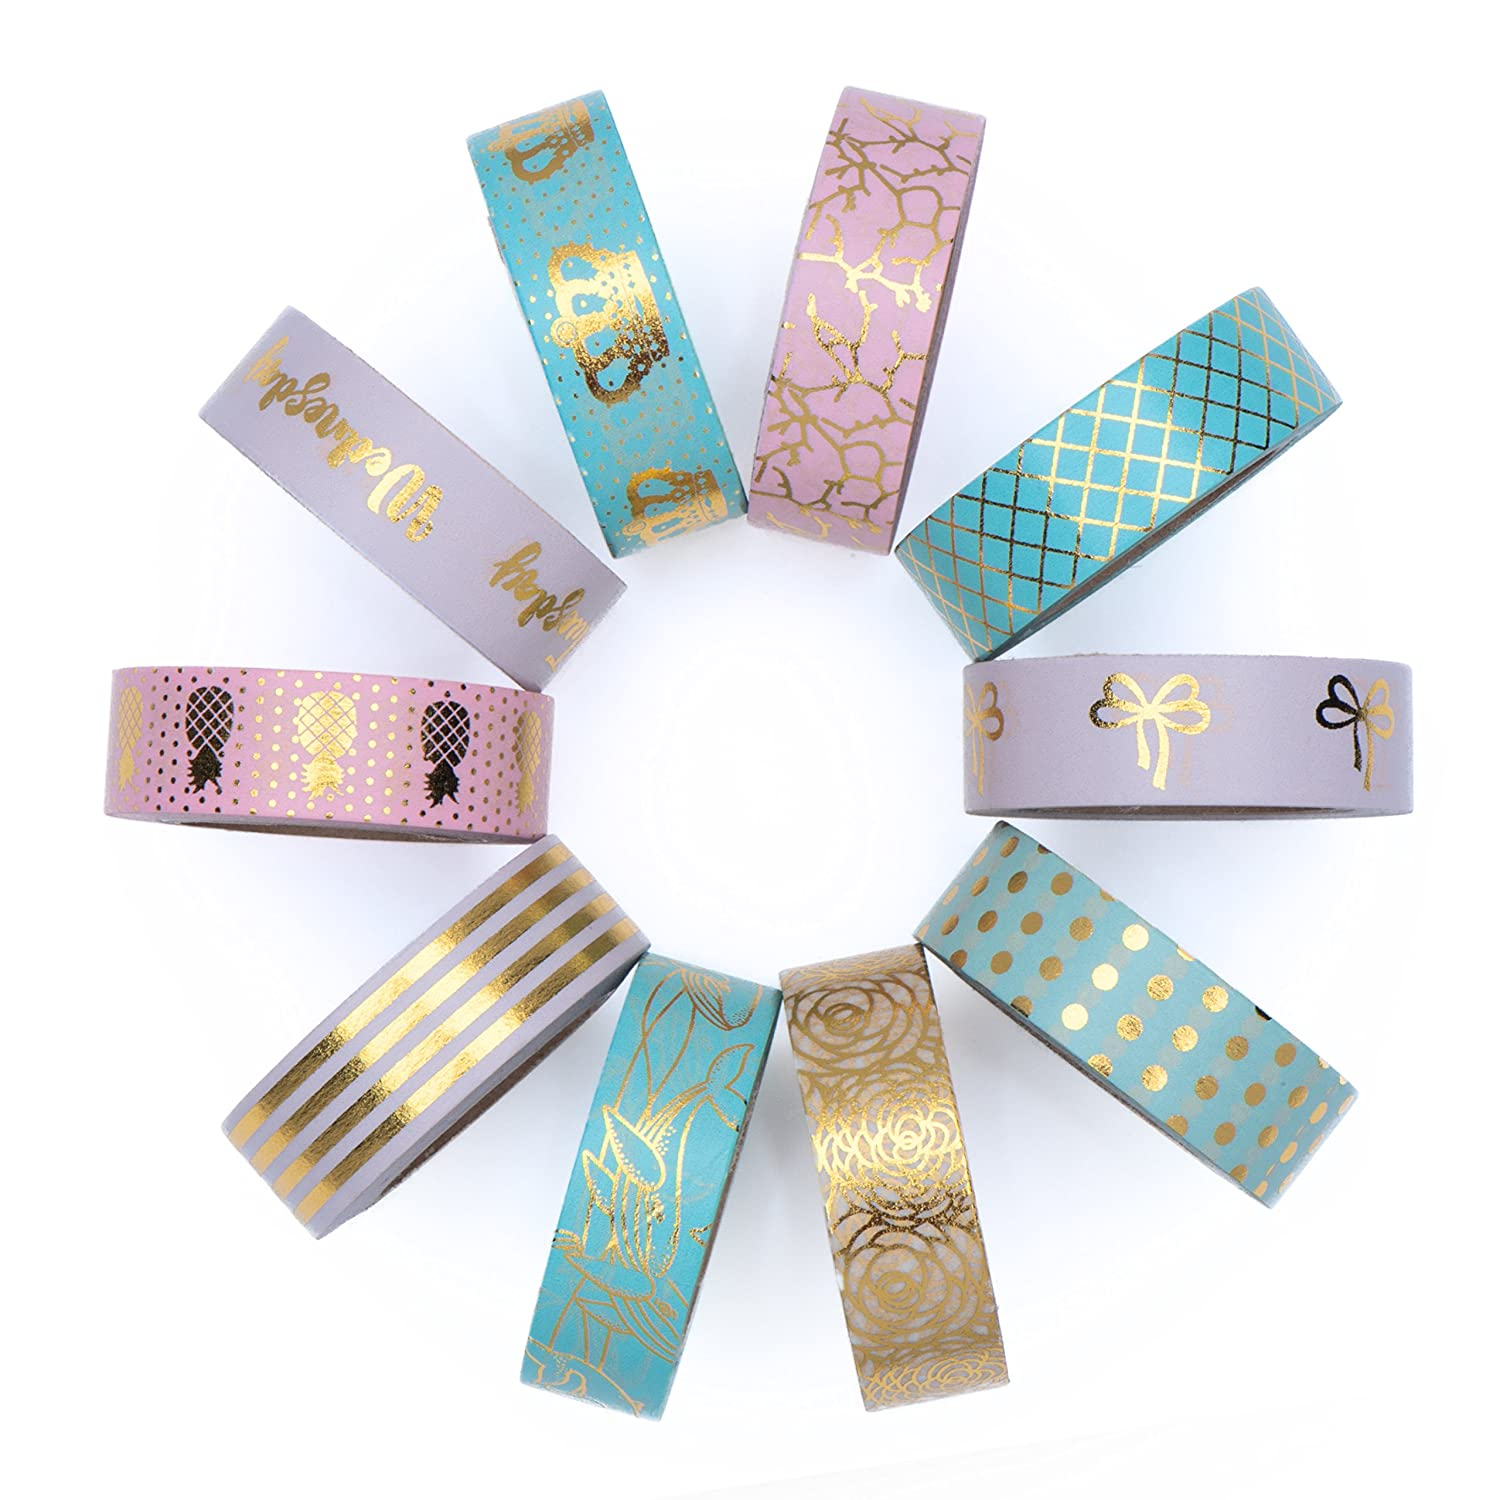 Washi Tape Set of 10 Cute Gold Foil Rolls - Extra Long 33 Feet - Decorative Masking Tapes Great for DIY Washi Tape Arts and Crafts Projects; Planners, Scrapbooking, Wall Art, Bullet Journals Rosie Dawn 4336847171